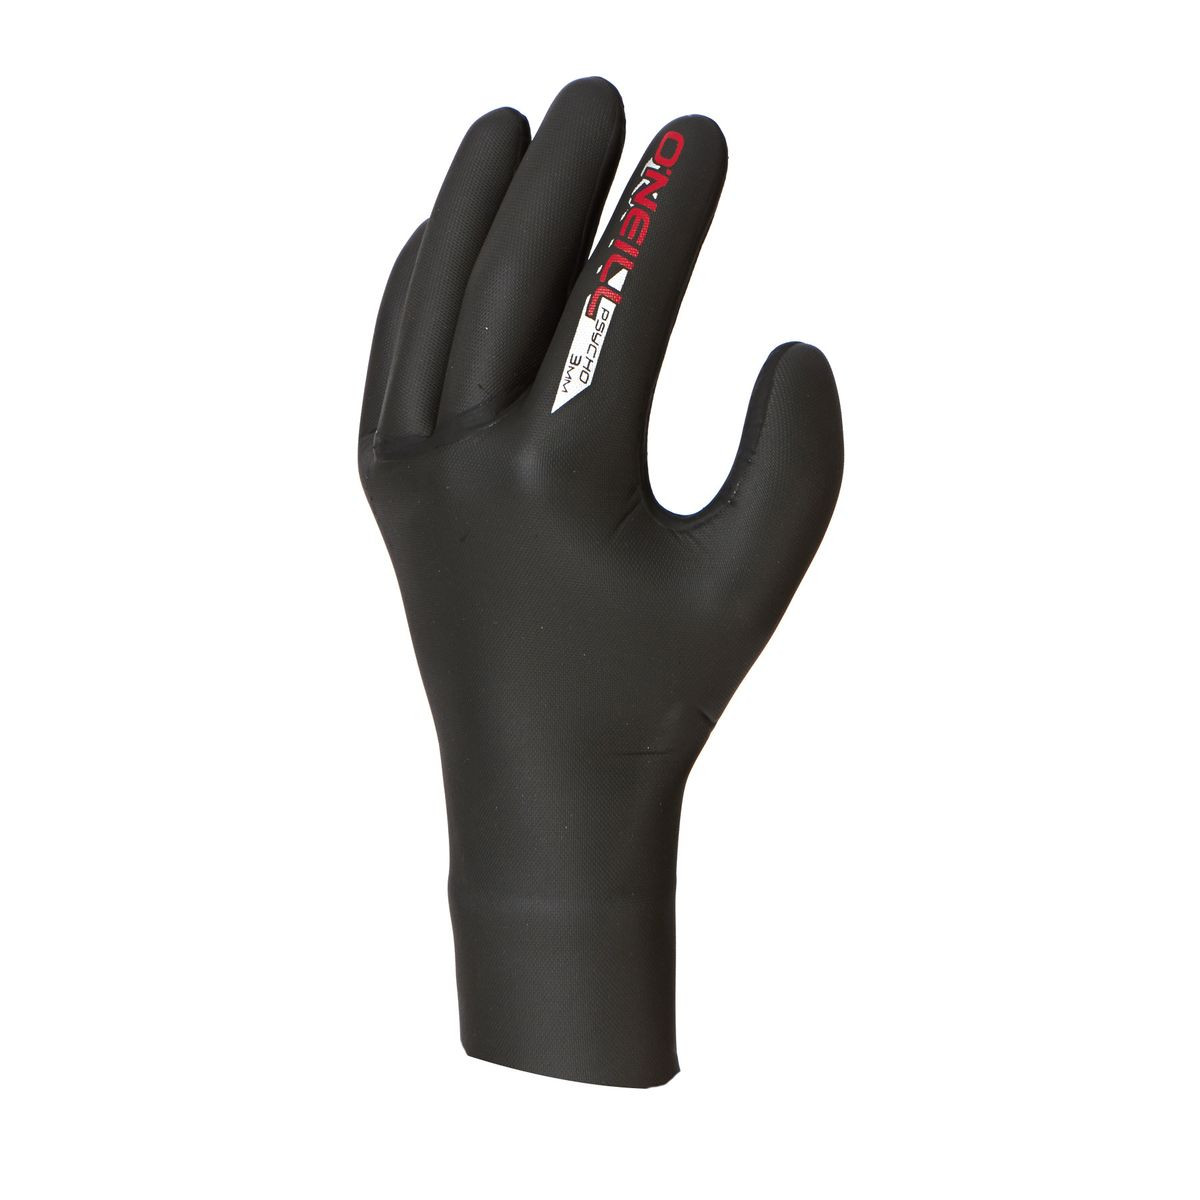 O'Neill Psycho Single Lined 5 Finger Wetsuit Gloves - 3mm